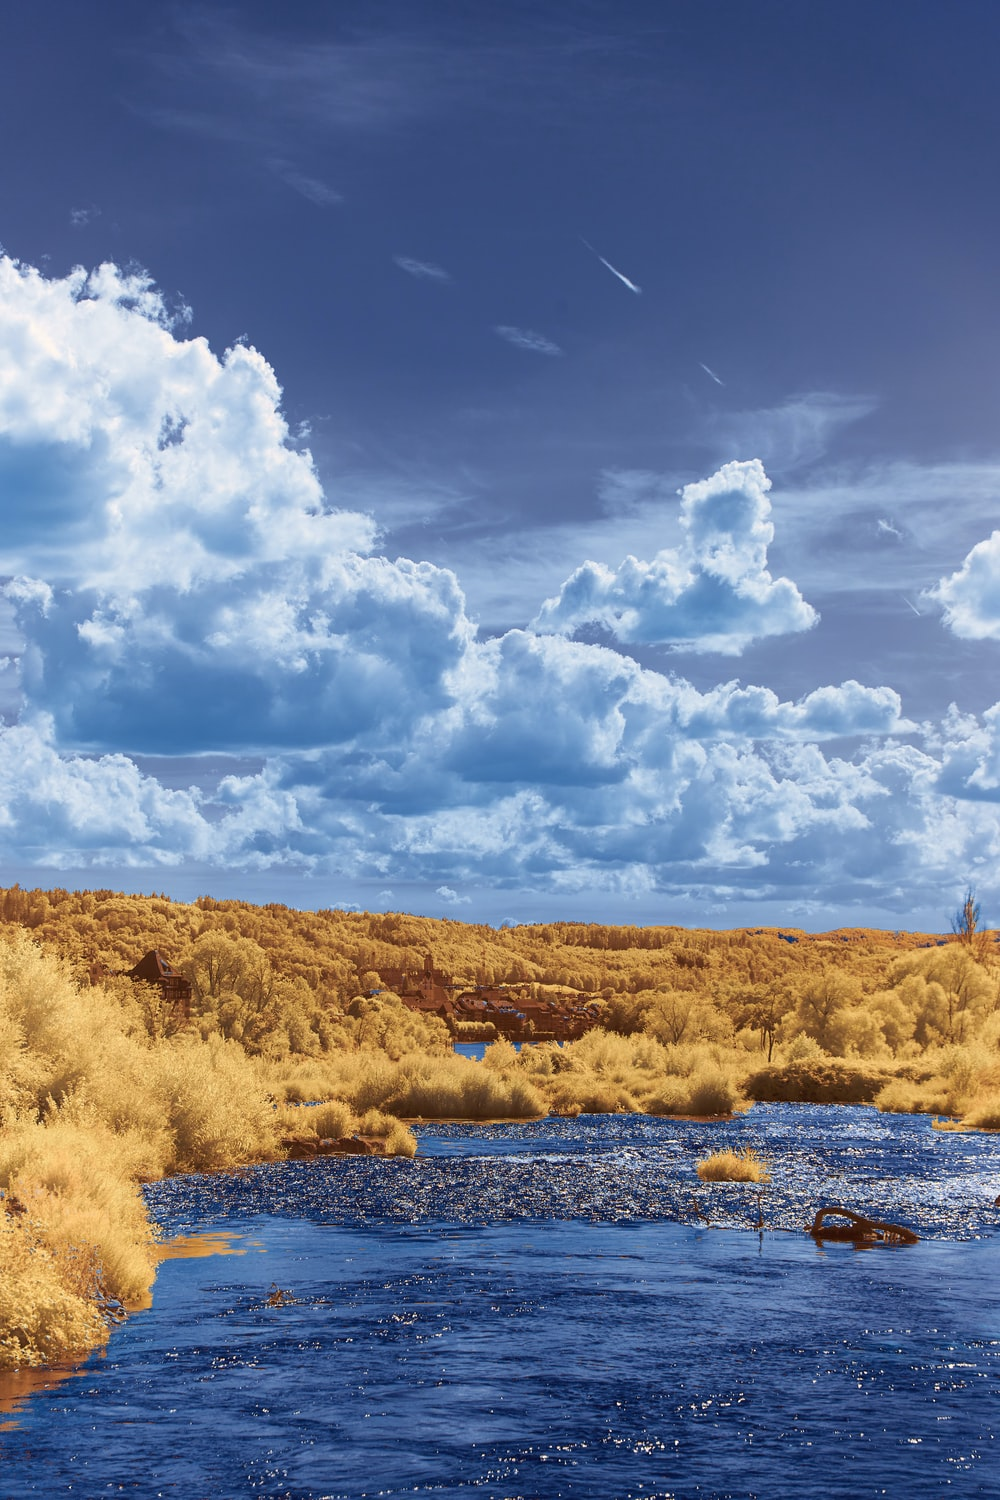 brown grass field near body of water under white clouds and blue sky during daytime